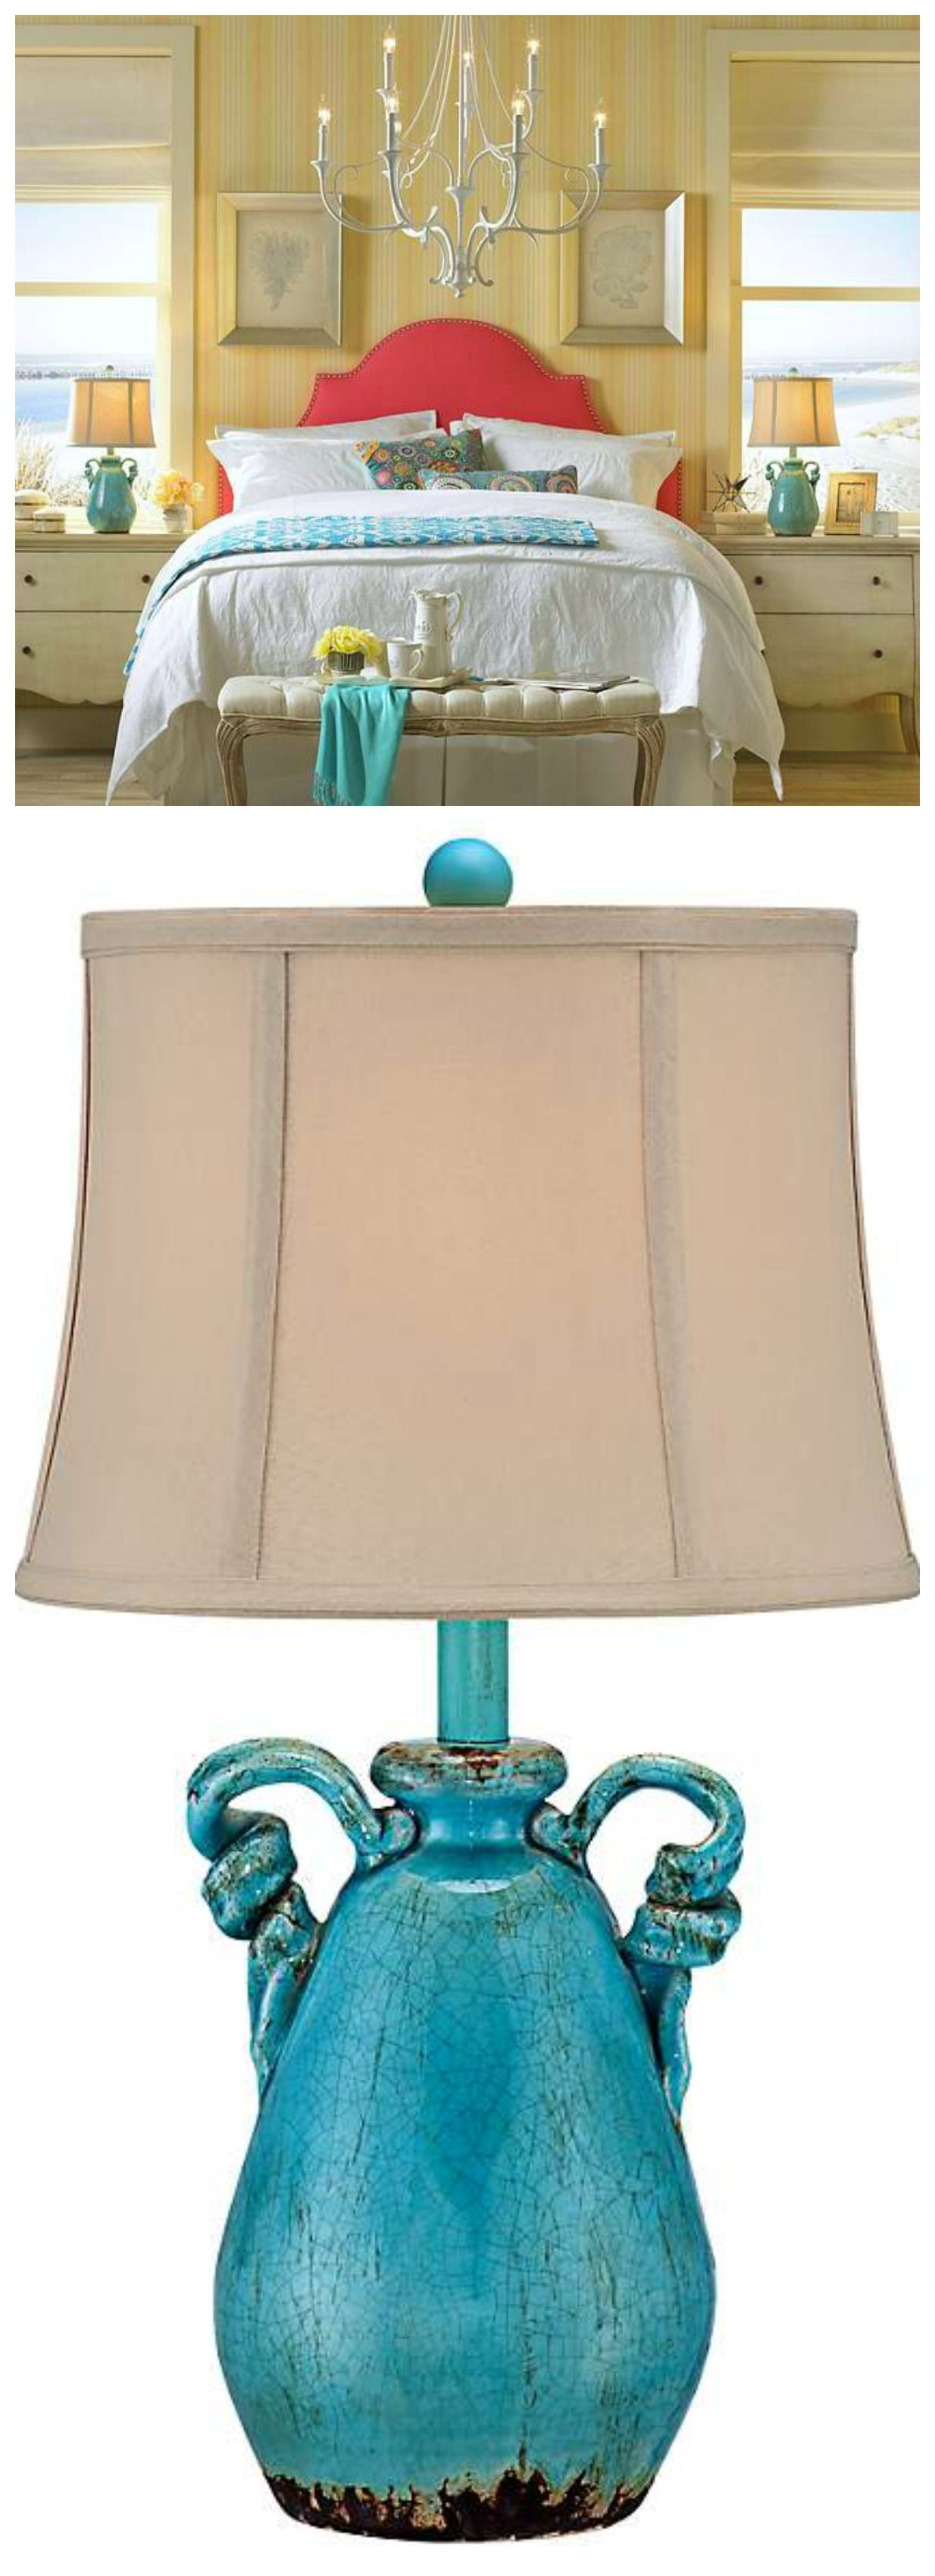 Gorgeous Ceramic Table Lamp In An Eye Catching Turquoise Blue Crackled  Finish, With Rope Design Inspirations